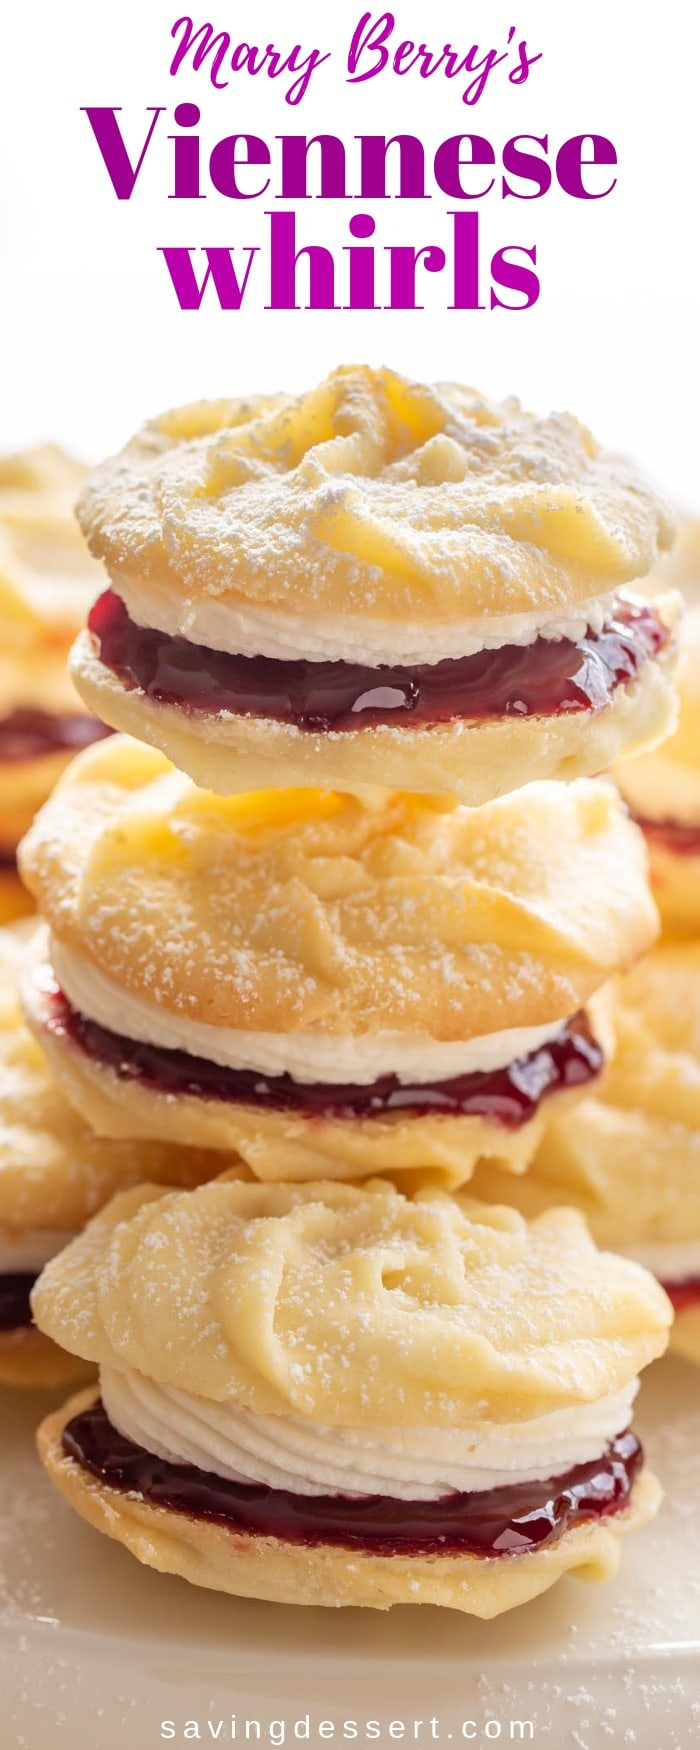 Mary Berry's Viennese Whirls - enjoy these delicious, tender melt-in-your-mouth butter cookies slathered with raspberry jam and a light vanilla buttercream filling. #savingroomfordessert #Viennesewhirls #cookies #holidaybaking #raspberryjamcookies #buttercookies #Maryberry #whirls